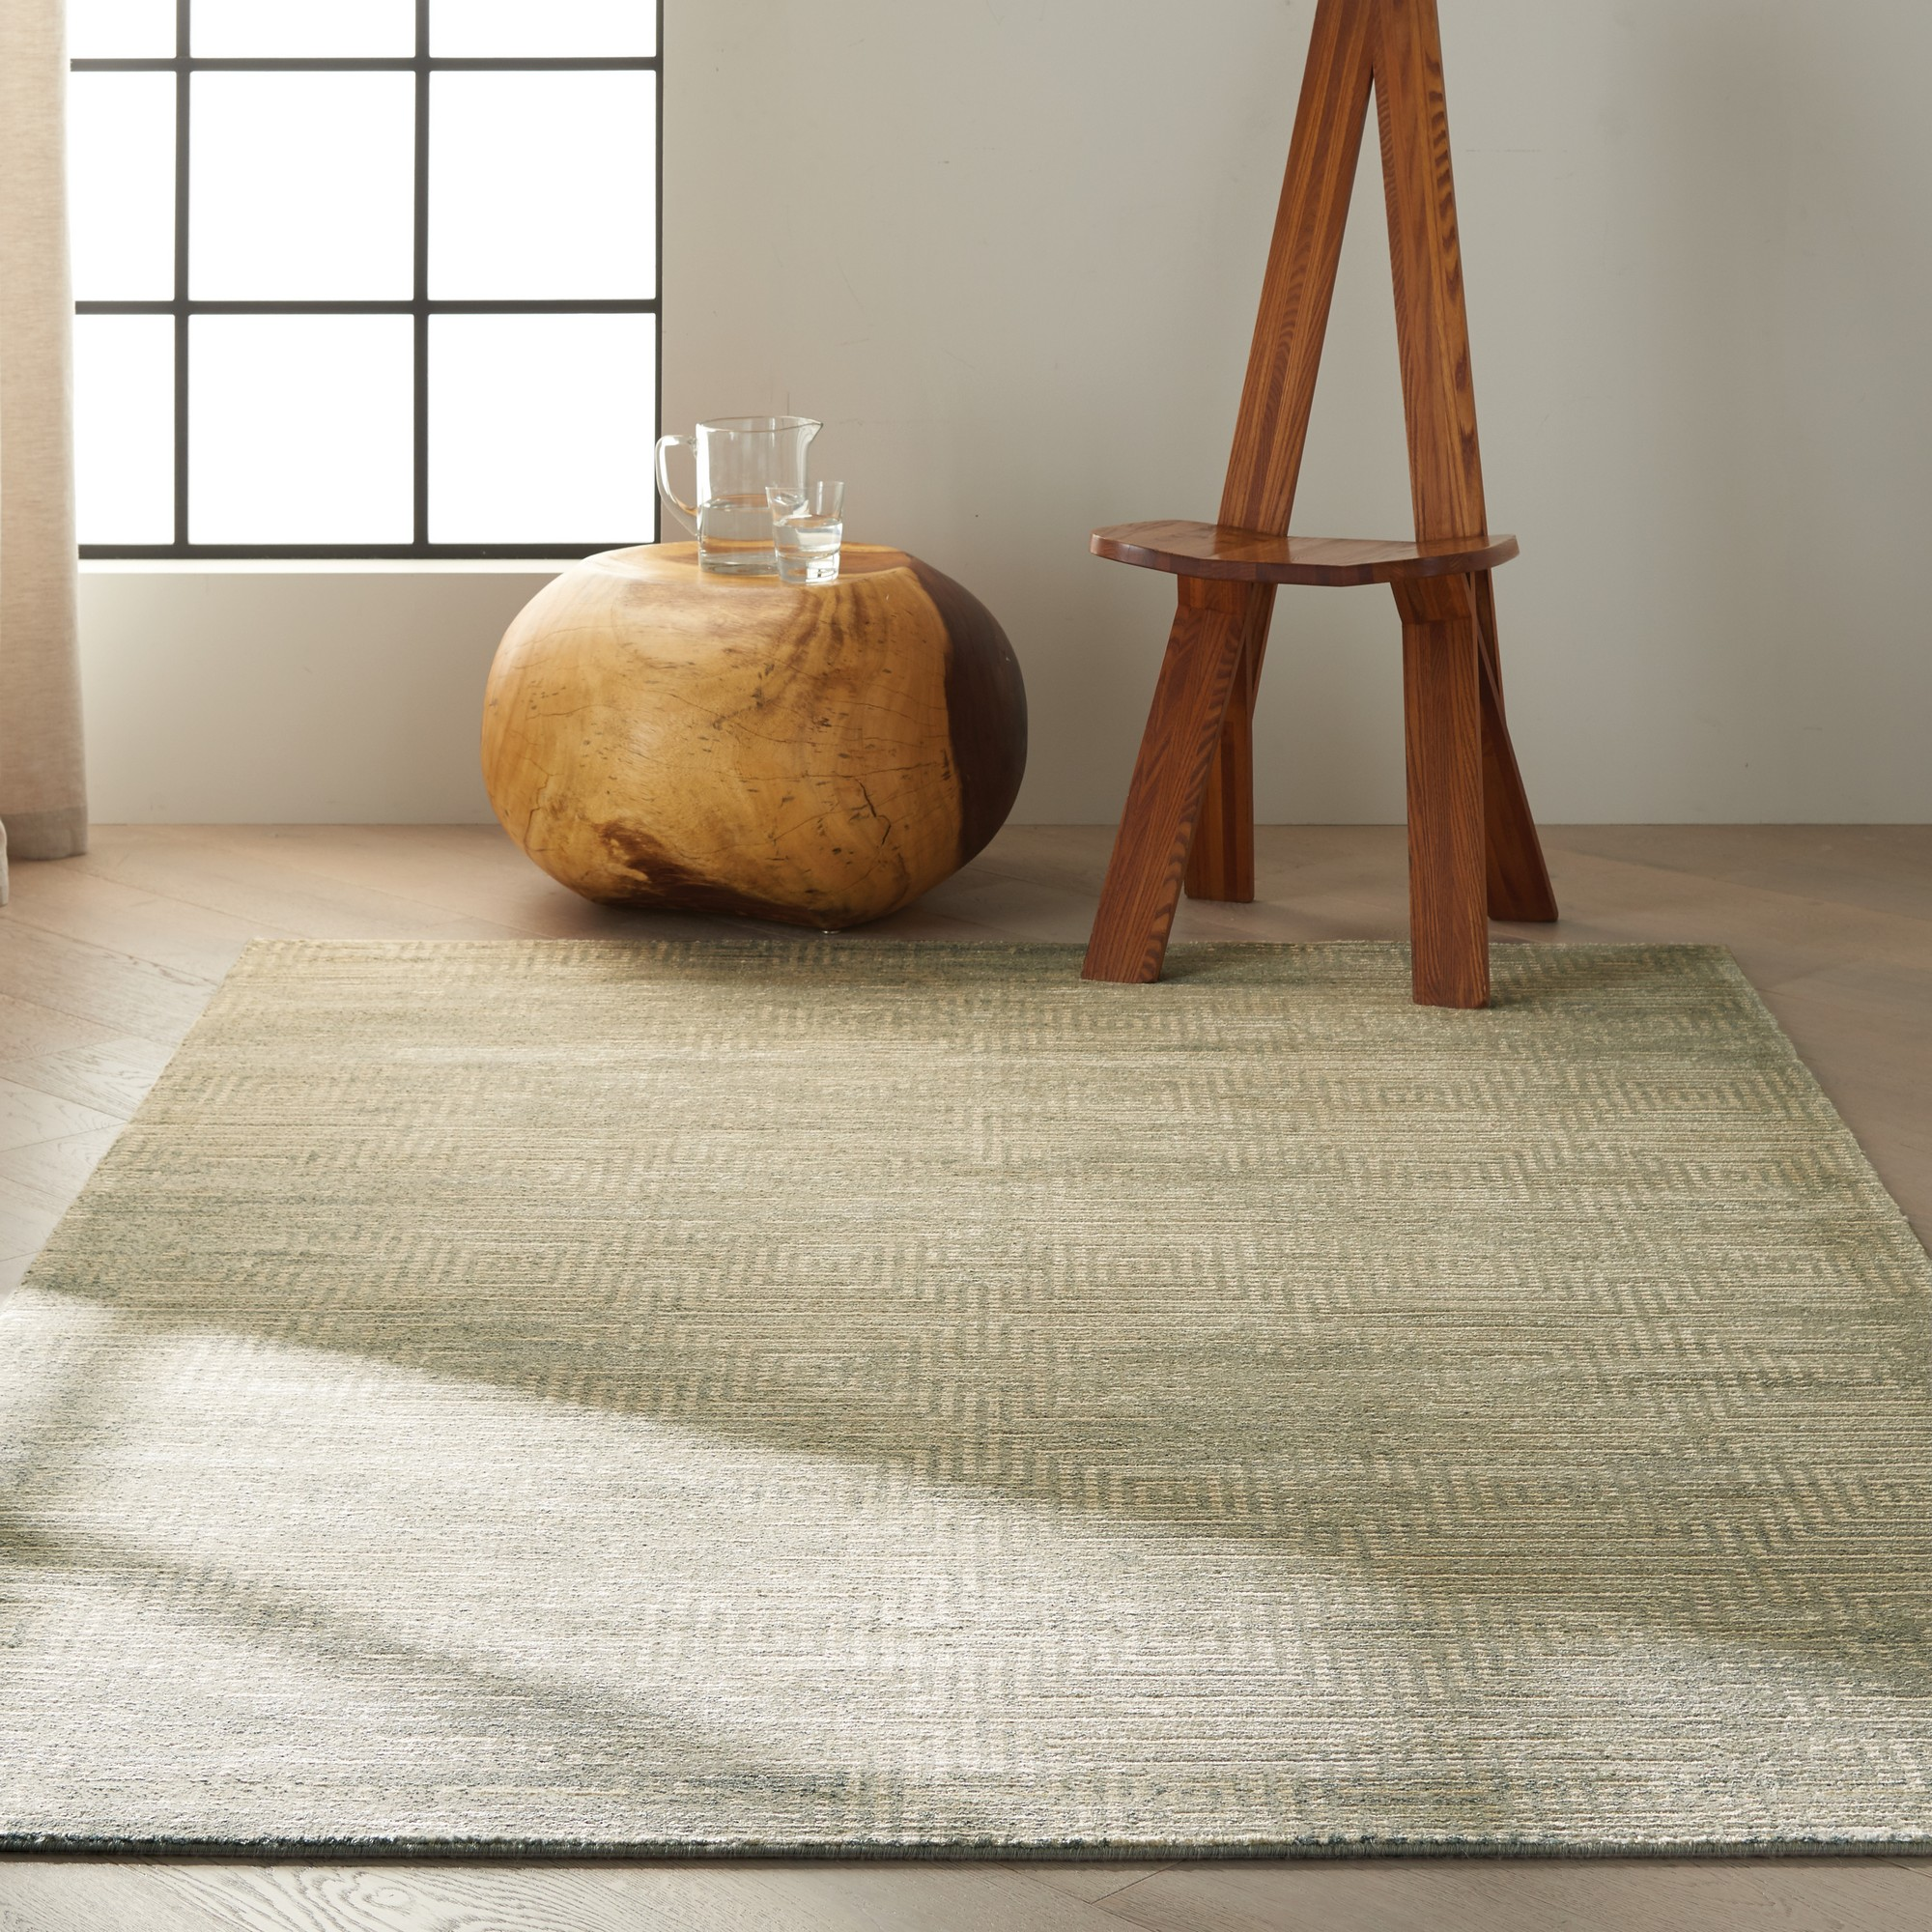 Calvin Klein Maya Rugs CK32 MAY01 in Mineral